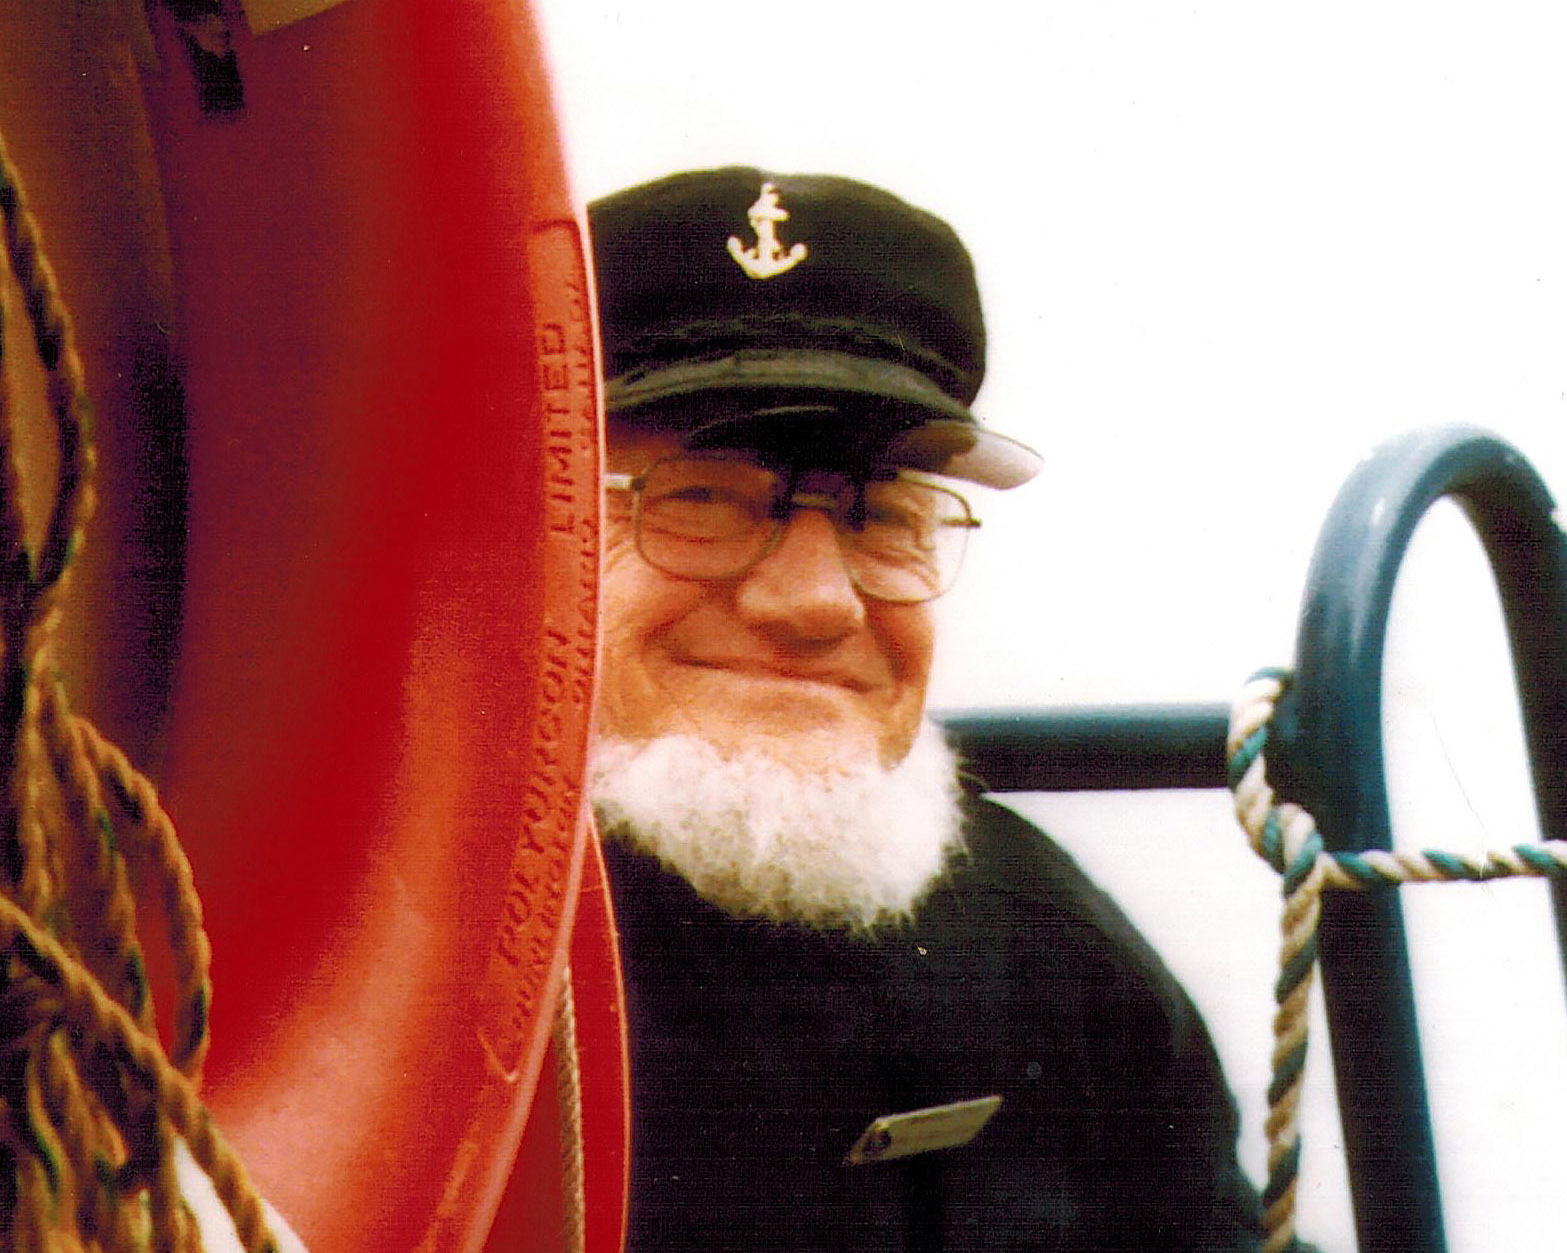 Captain Joe Van Schaick, circa 2003